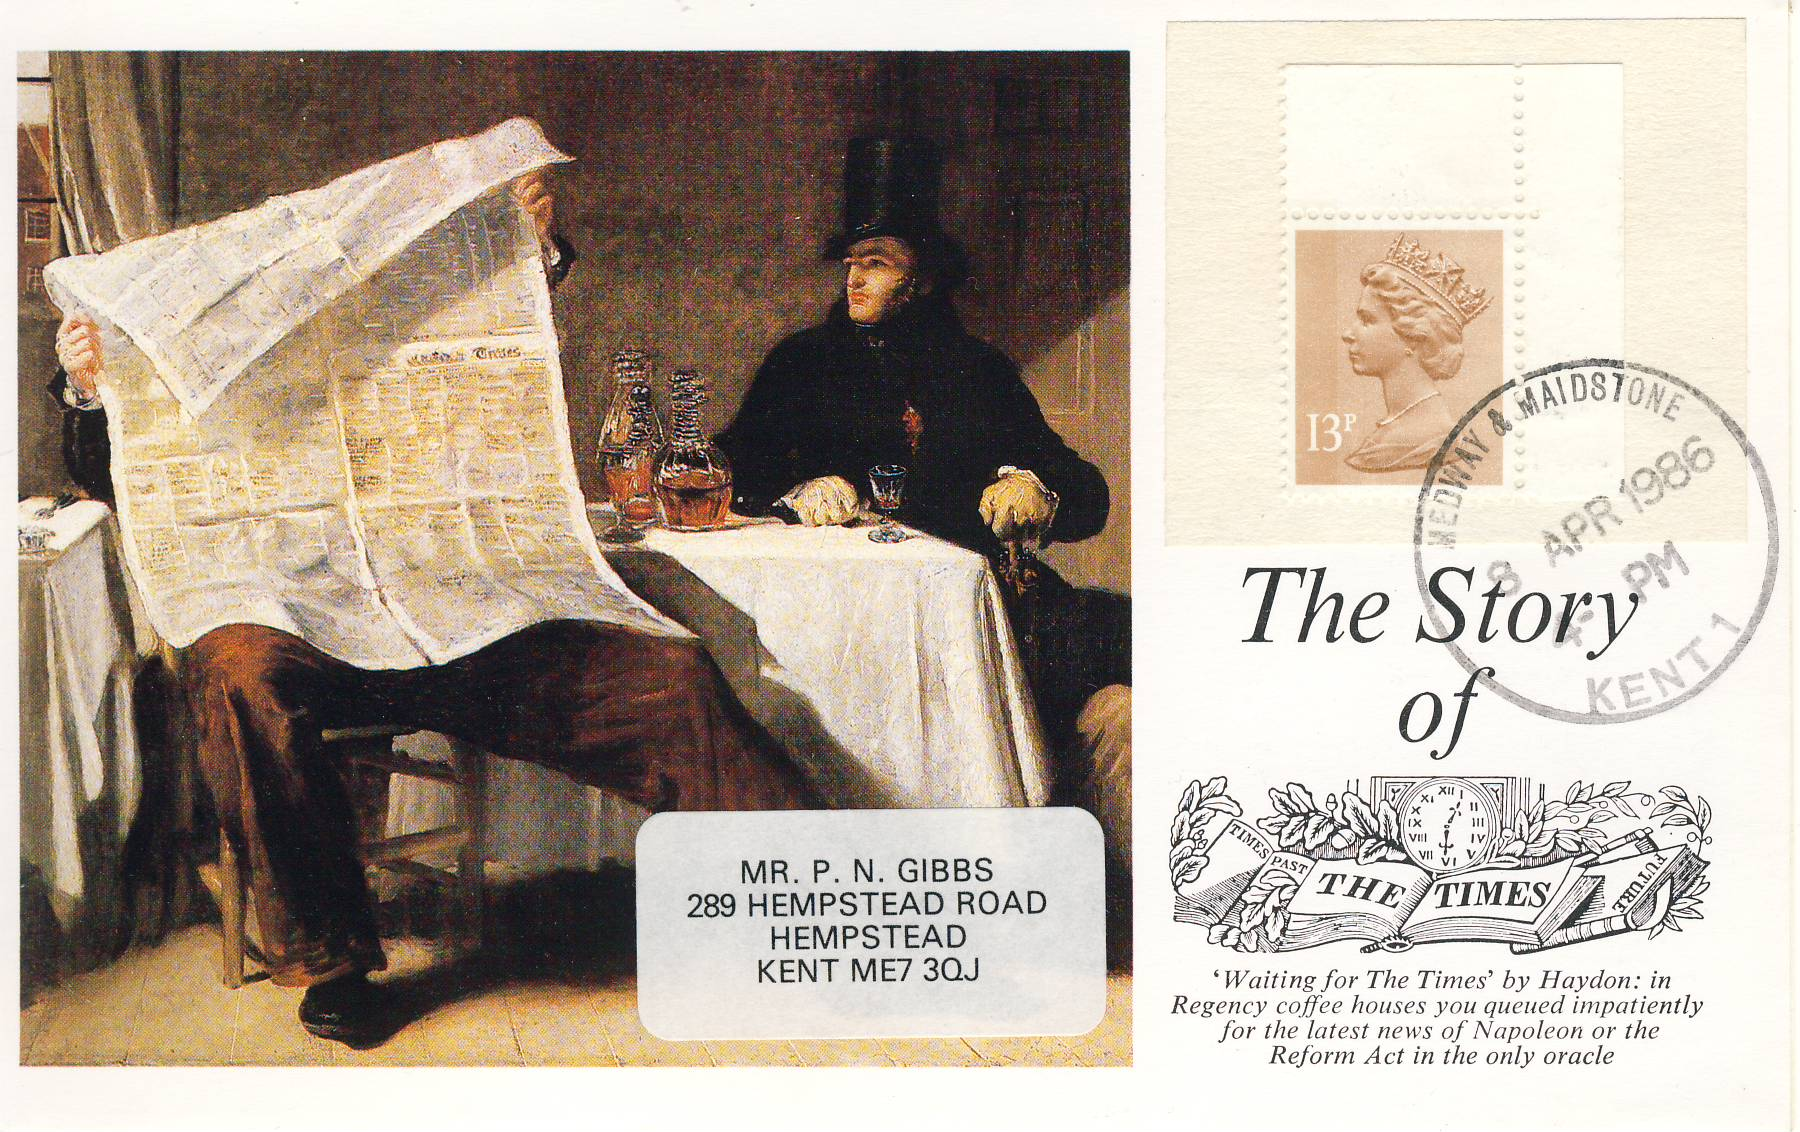 1986 The Story of the Times 19p Stamped Postcard Medway & Maidstone postmark refF607 Very good condition.